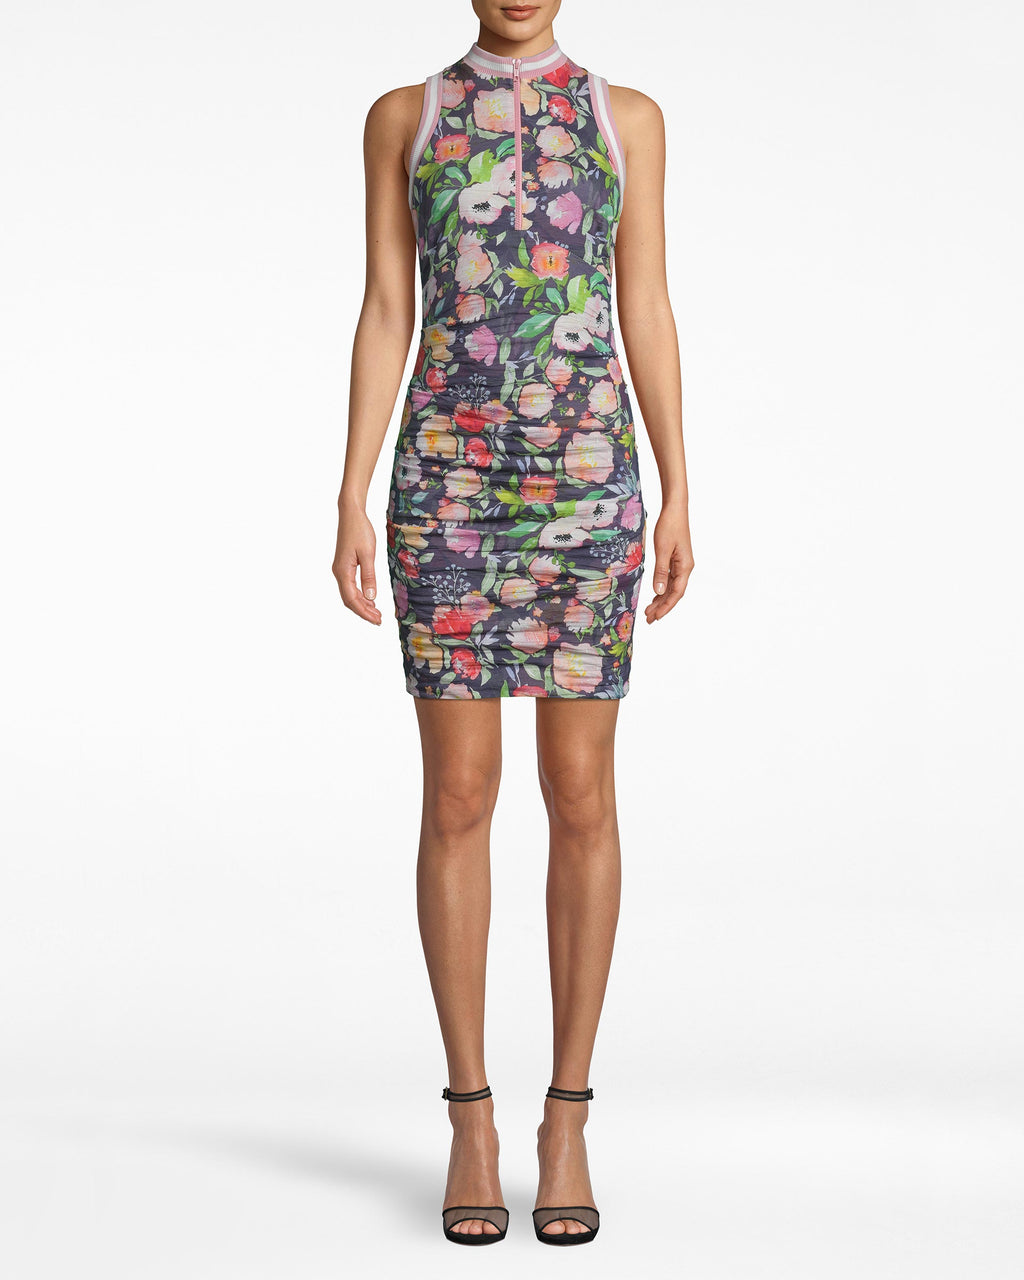 CB20115 - WATERCOLOR FLORAL ZIP FRONT DRESS - dresses - short - NOT MANY DRESSES CAN BE WORN TO DINNER AND ON THE GOLF COURSE. WITH A CHUNKY ZIP FRONT AND PINK RIBBED DETAILS, THIS FLORAL DRESS IS ULTRA FEMININE WITH A SPORTY TWIST. THE RUCHING IS AN ADDED ACCENT, HIGHLIGHTING THE SILHOUETTE.